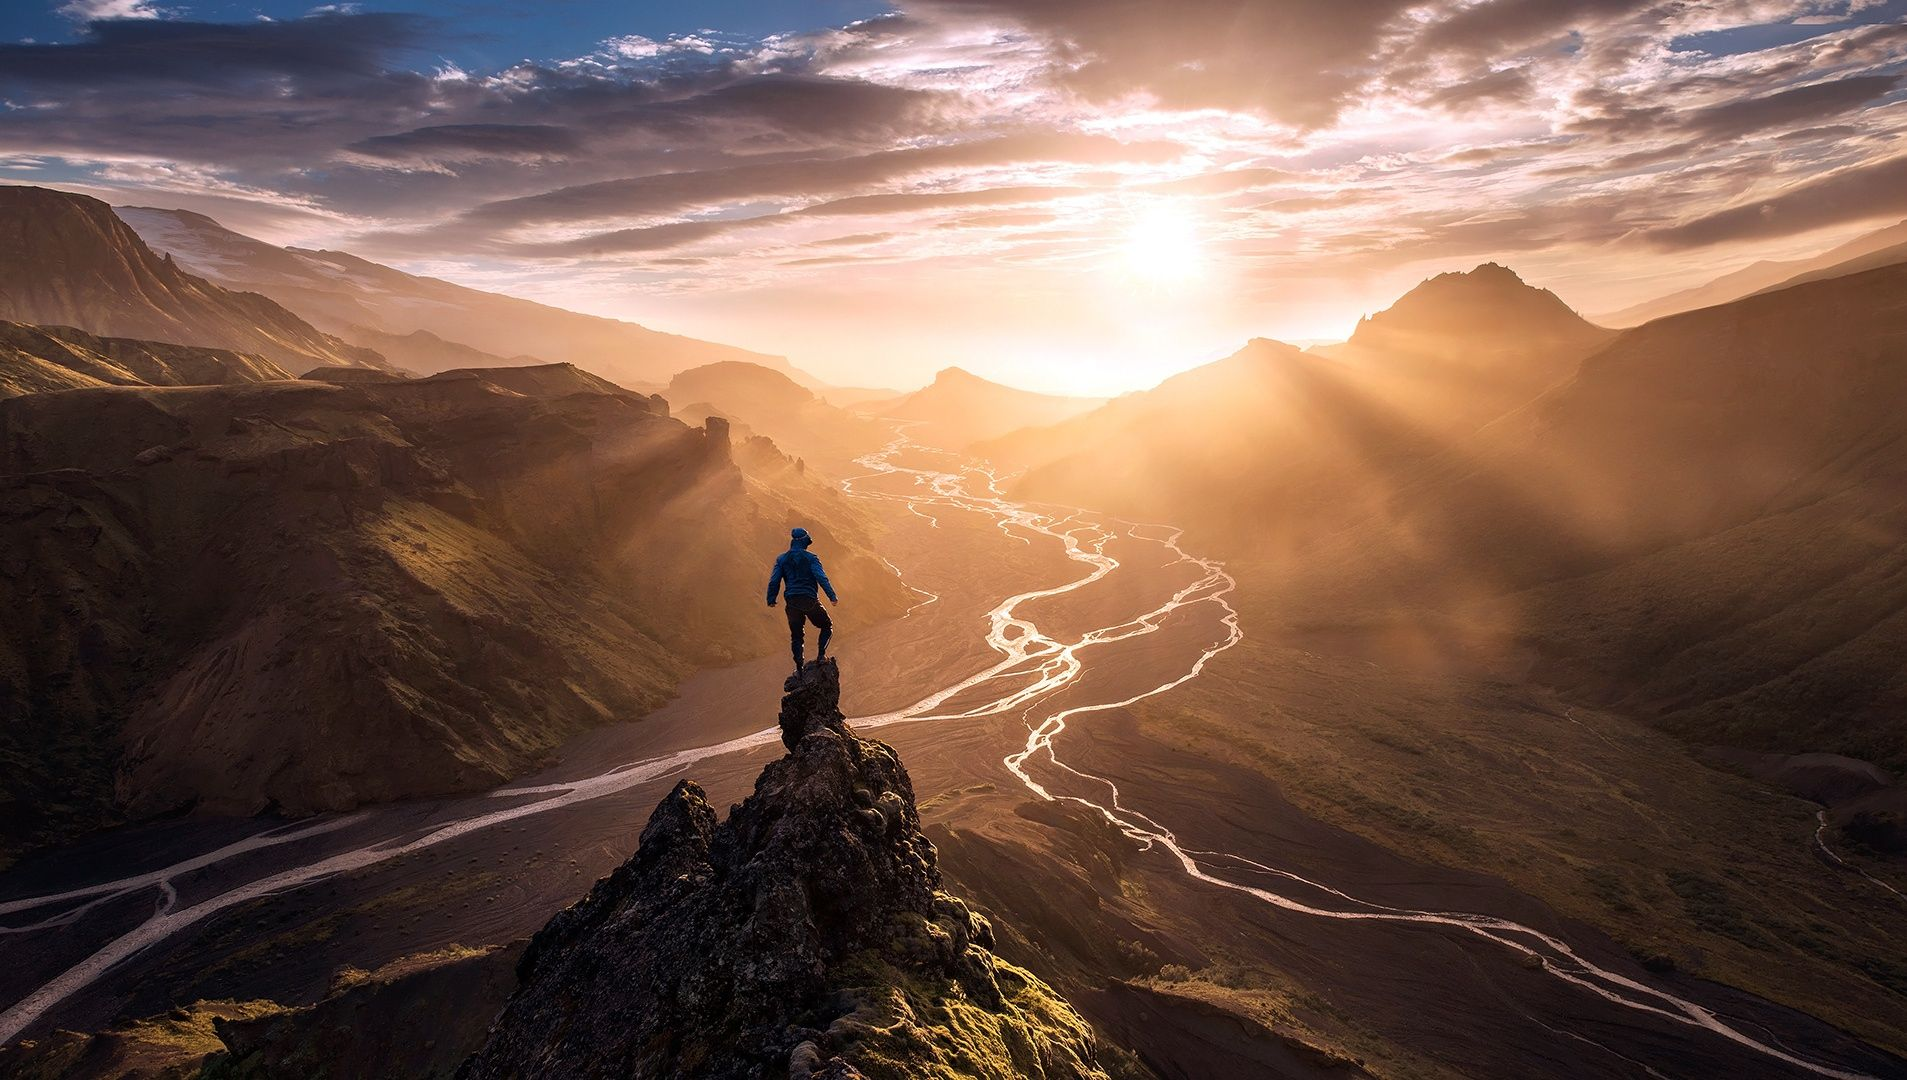 Ethereal landscapes nature photography by donna geissler - 10 Photo Tips From Professional Photographers Max Rive Shares His Story And Tips For Shooting Tiny People In Massive Landscapes